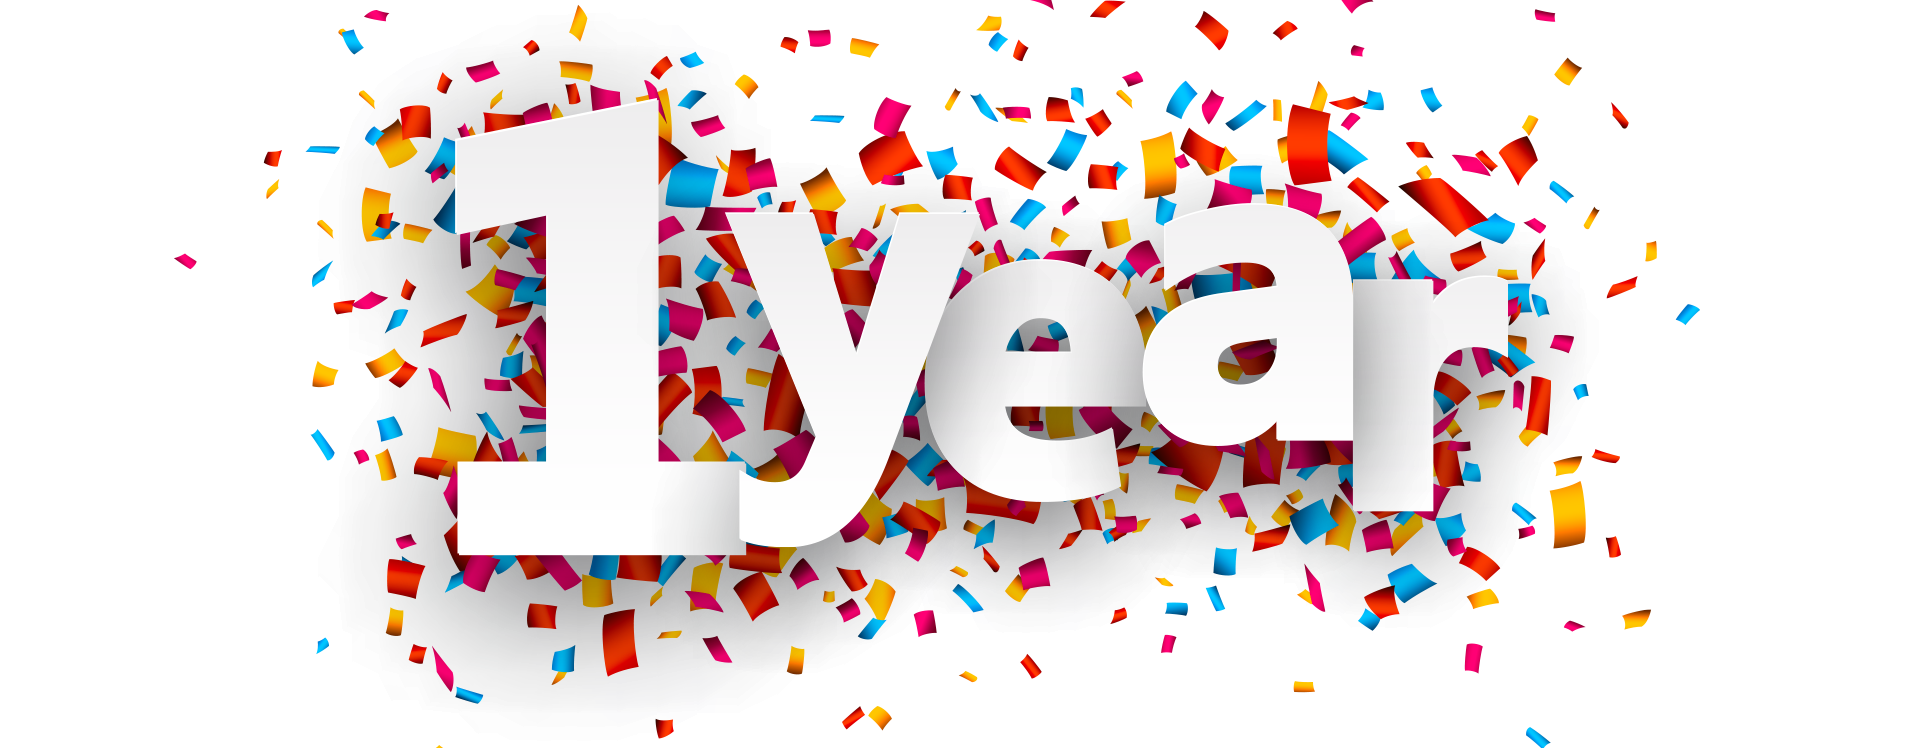 1 year celebration png. One anniversary transparent images